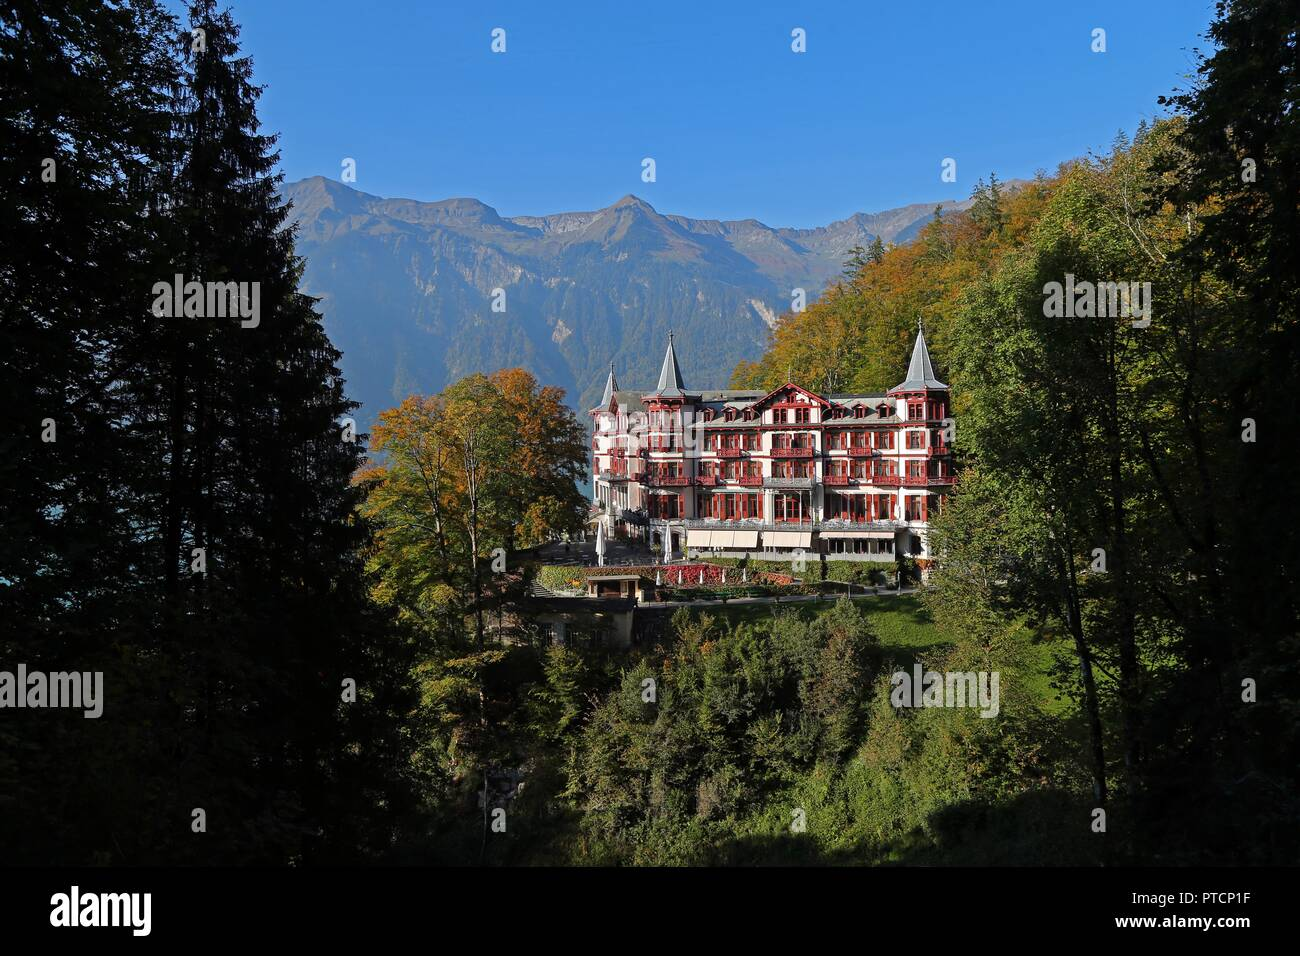 A view of the GrandHotel Giessbach located in Brienz, Switzerland. Stock Photo